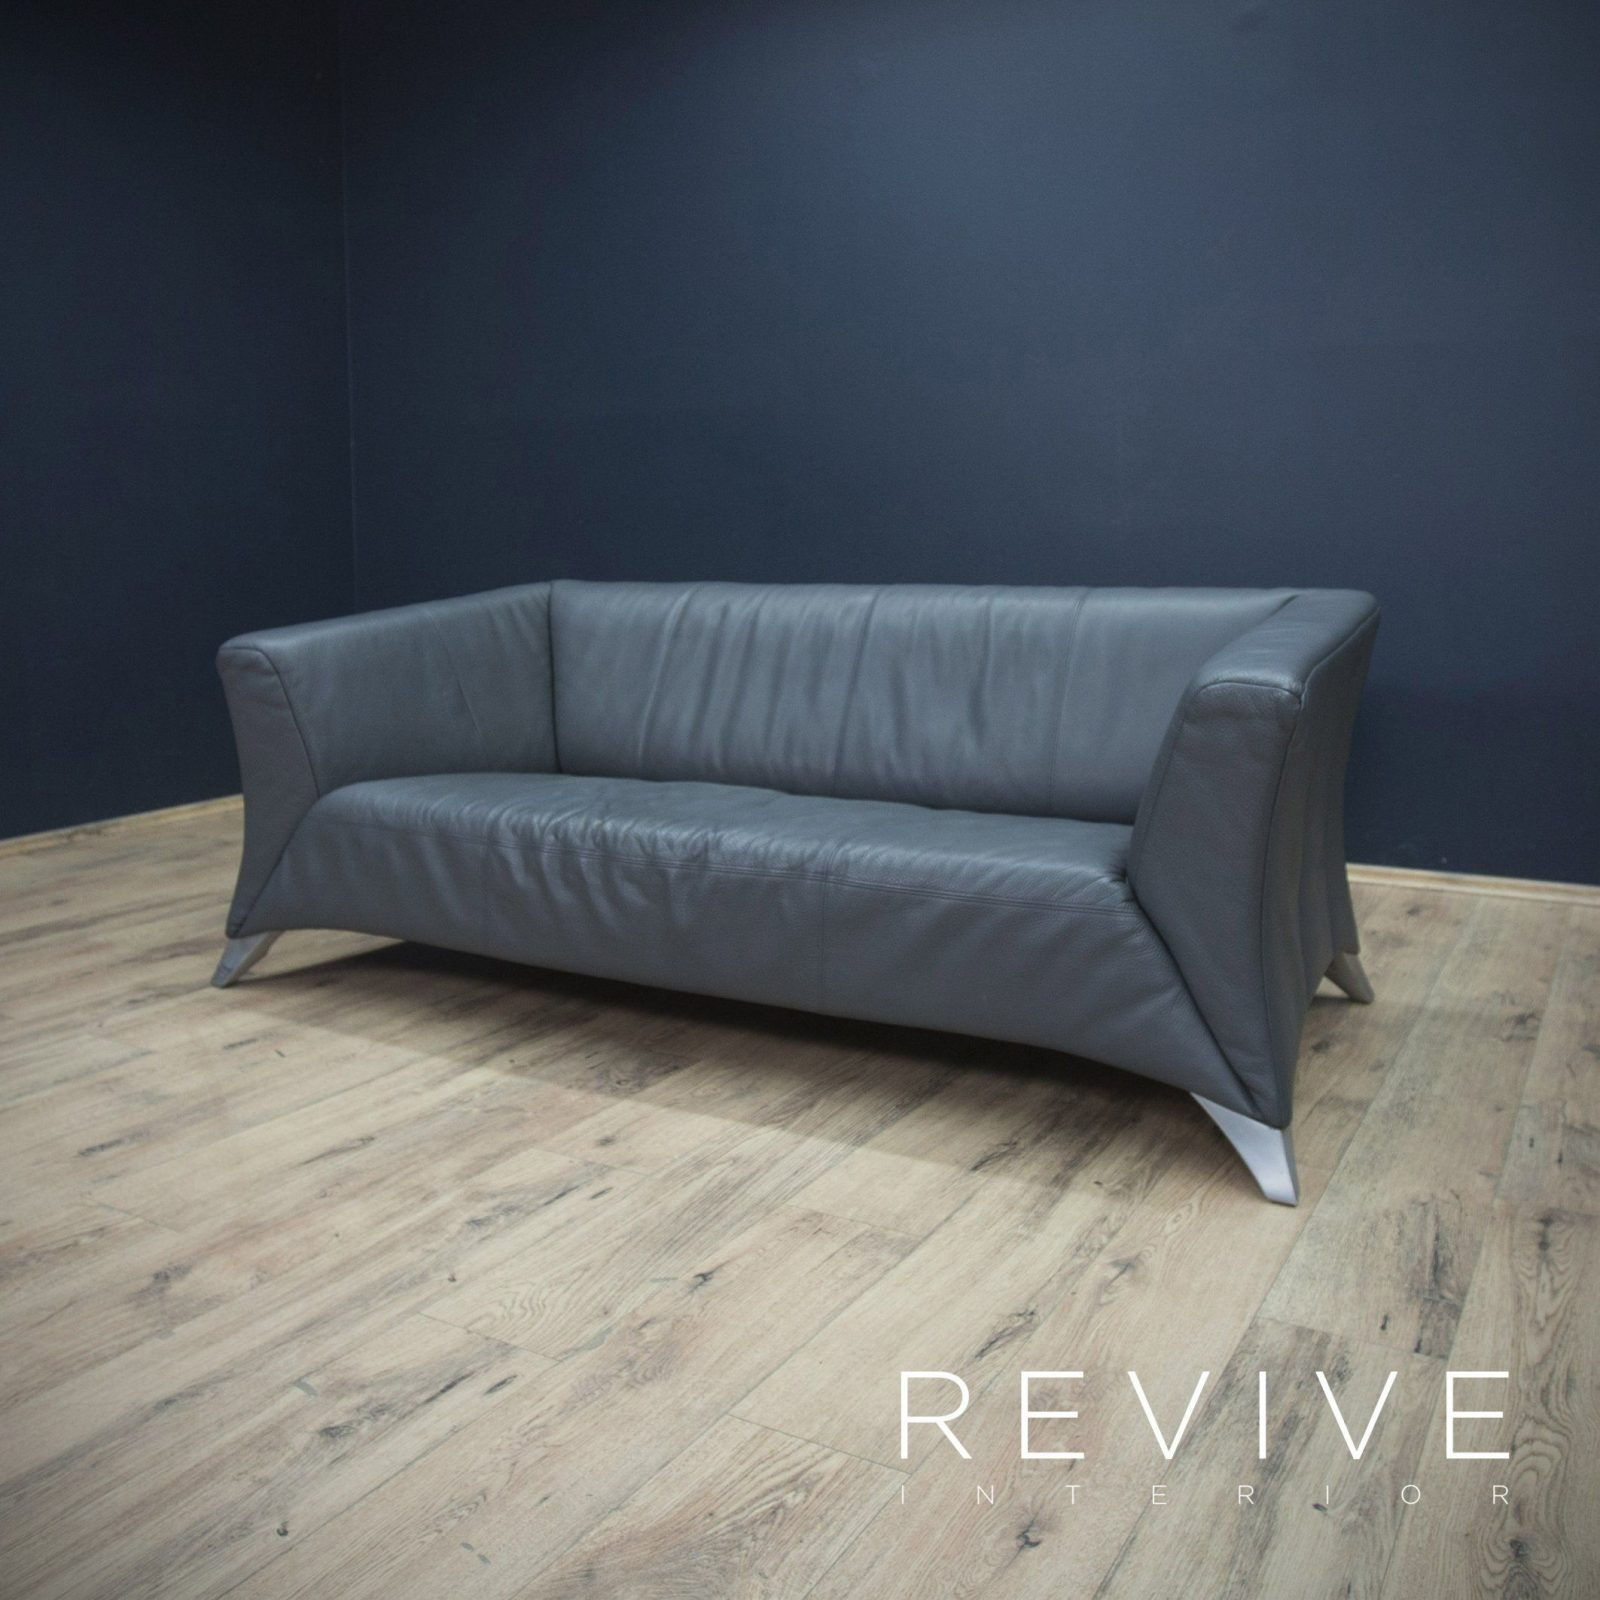 Rolf Benz 322 Sessel Rolf Benz Sofa Modell 322 Homedesignview Von Rolf Benz Sessel 322